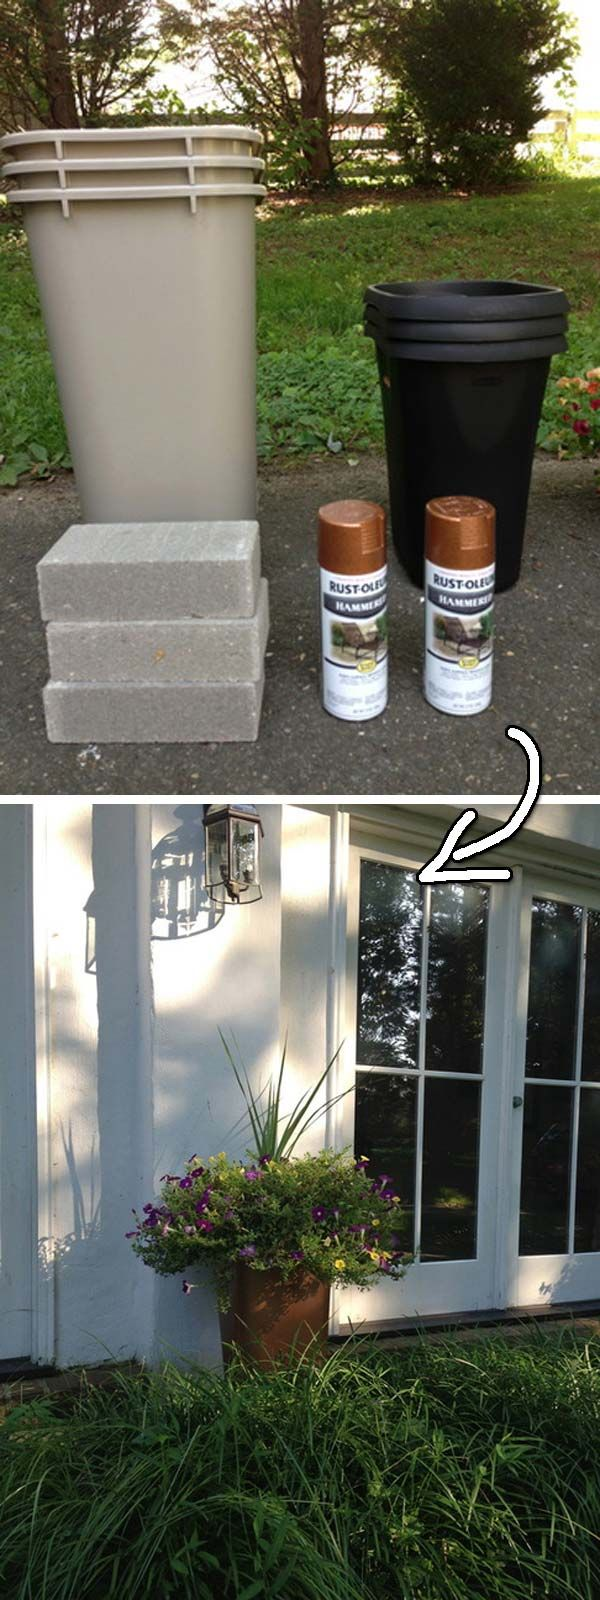 11. Change an old chair's color by fabric spray painting. Get Tutorial here —-> apinterestaddict.com 12. Cool idea of using a spray paint on existing door knobs. Get Tutorial here —-> thriftydecorchick.com 13. Cover your refrigerator with these classic painted magnetic letters. Get Tutorial here —-> inspiredbycharm.com 14. Give those glass mason jars a metallic look. […]